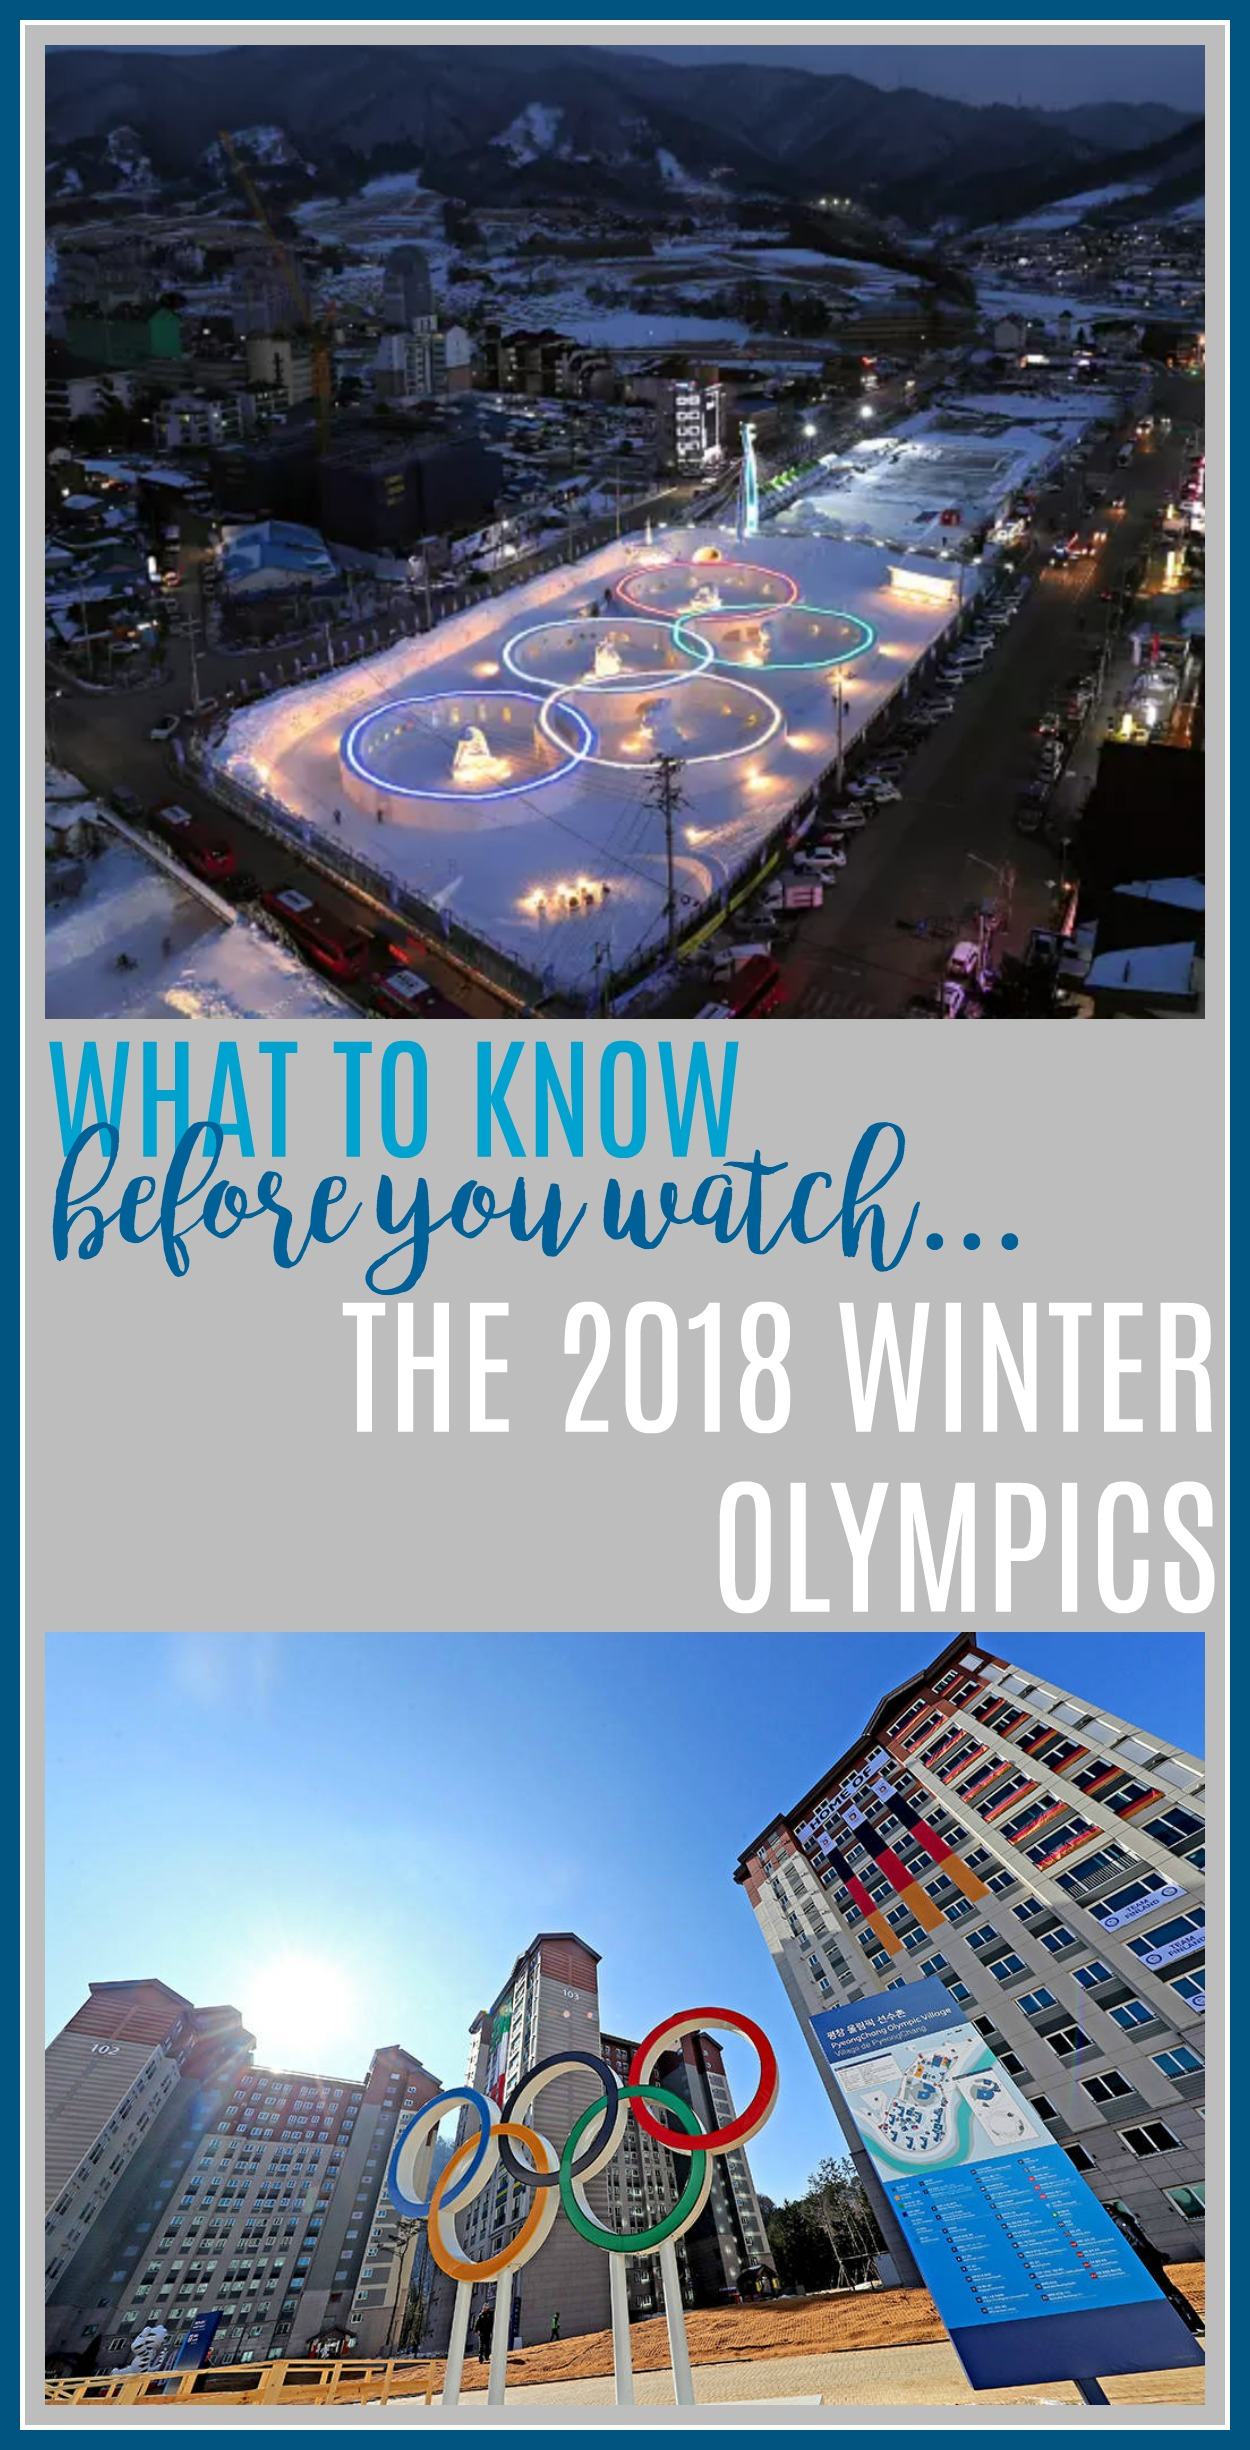 watching the winter olympics, viewing guide to the winter olympics, pyongchang 2018, winter sports